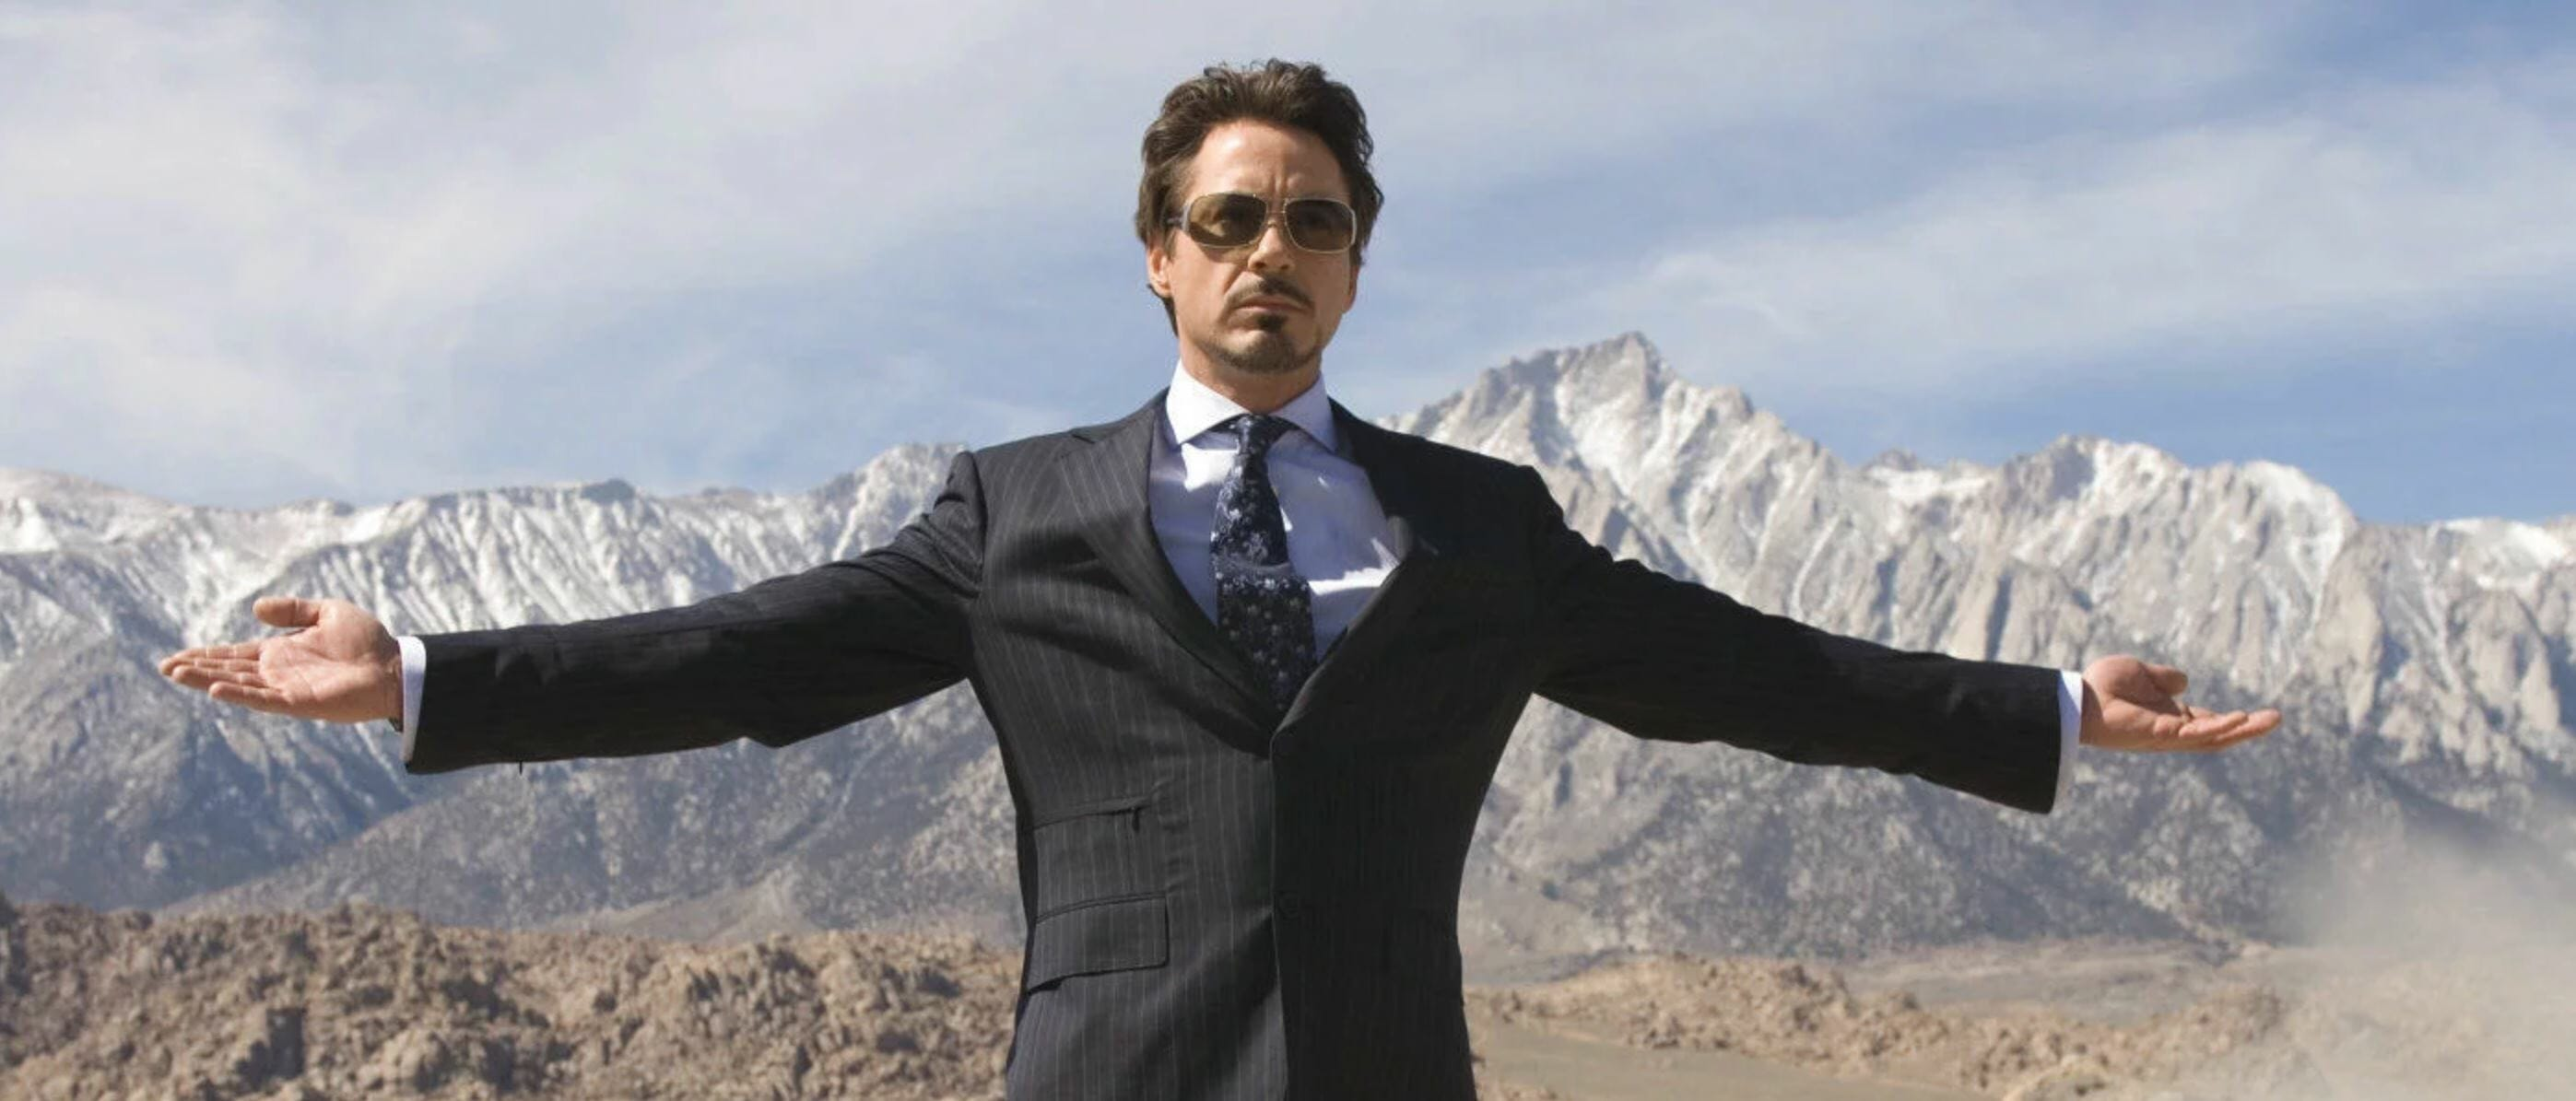 Robert Downey Jr is extremely wealthy